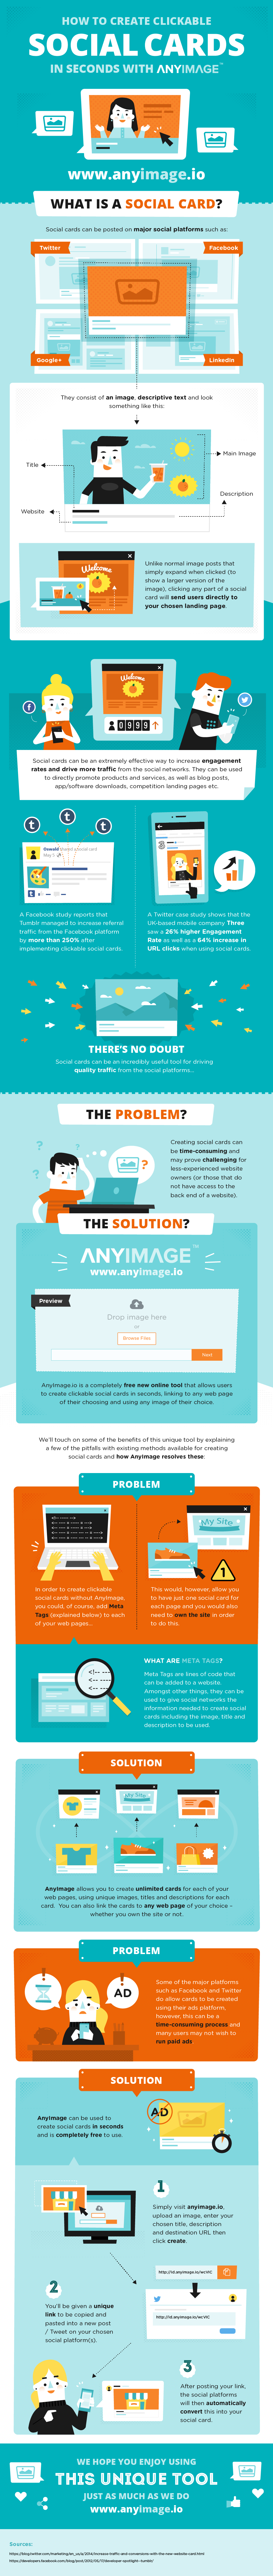 Creating Clickable Social Cards infographic